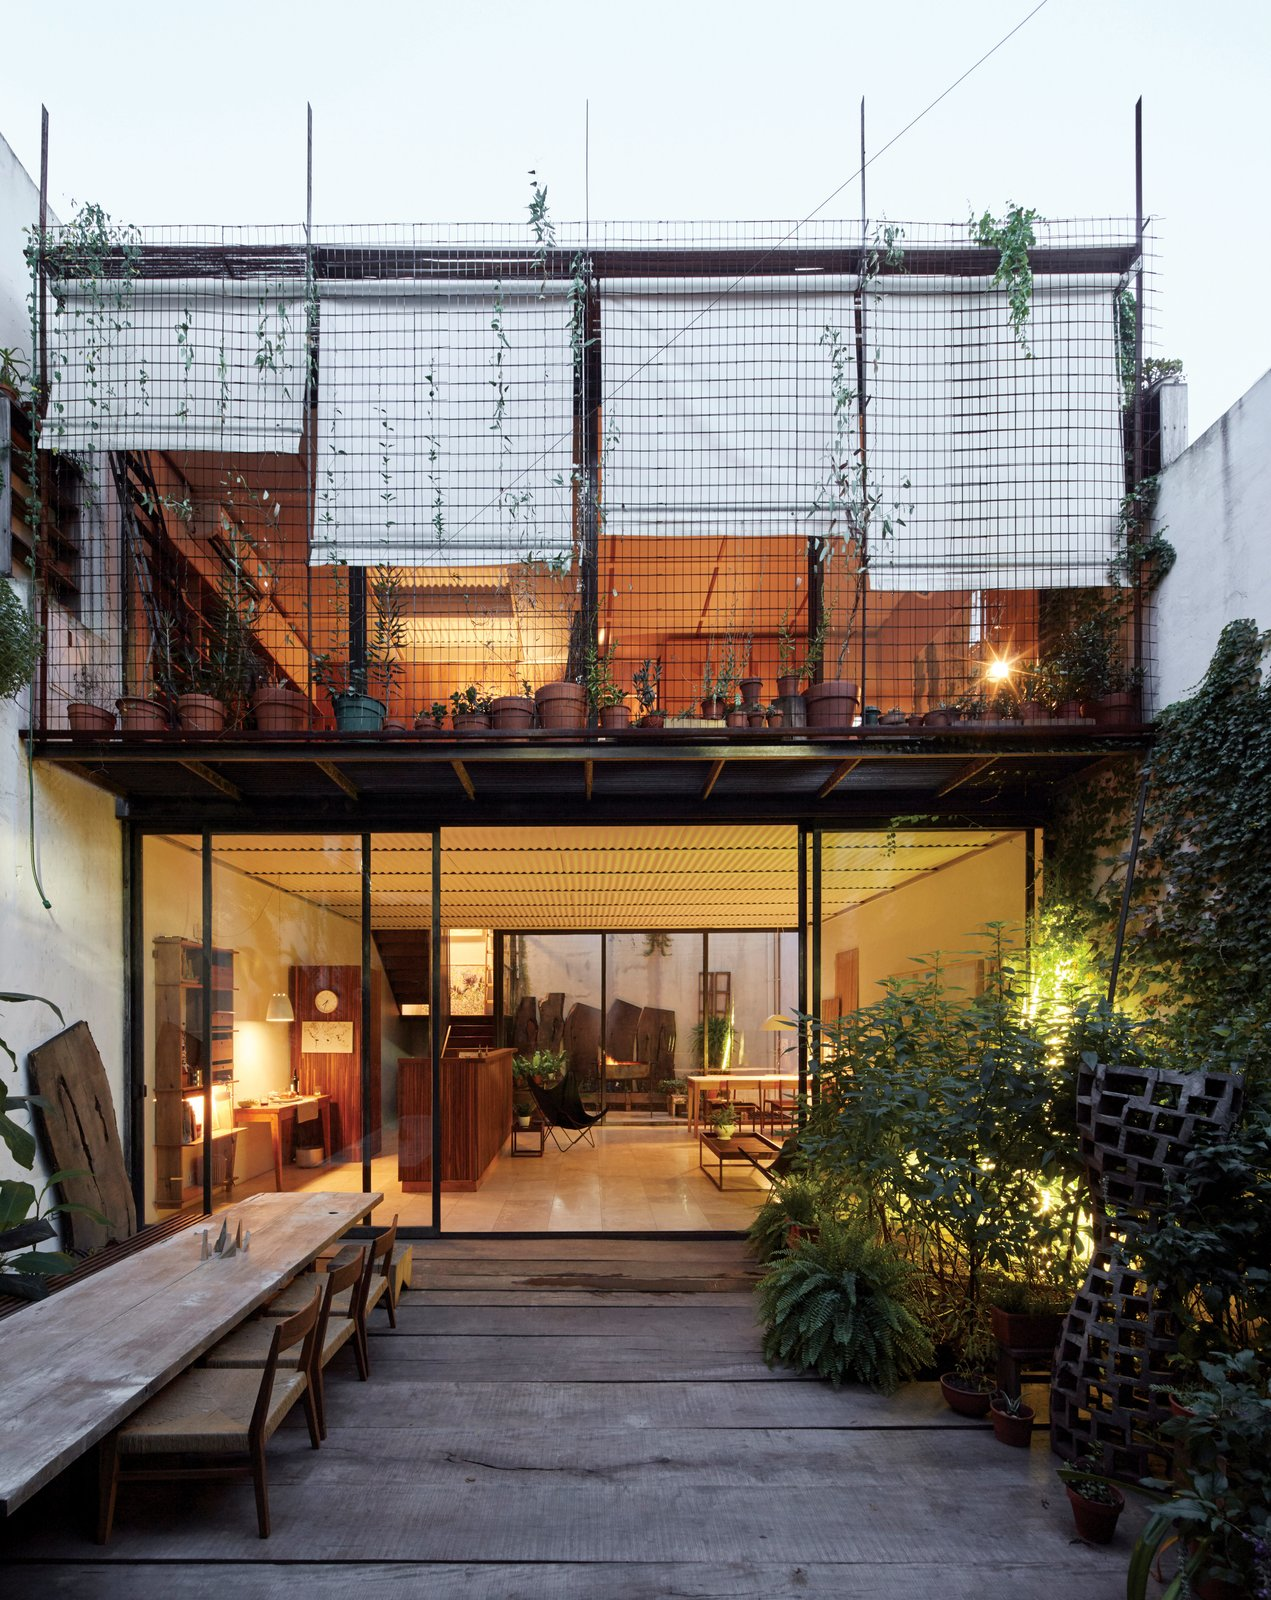 One Of A Kind Furniture Fills This Delightfully Serene Buenos Aires Home